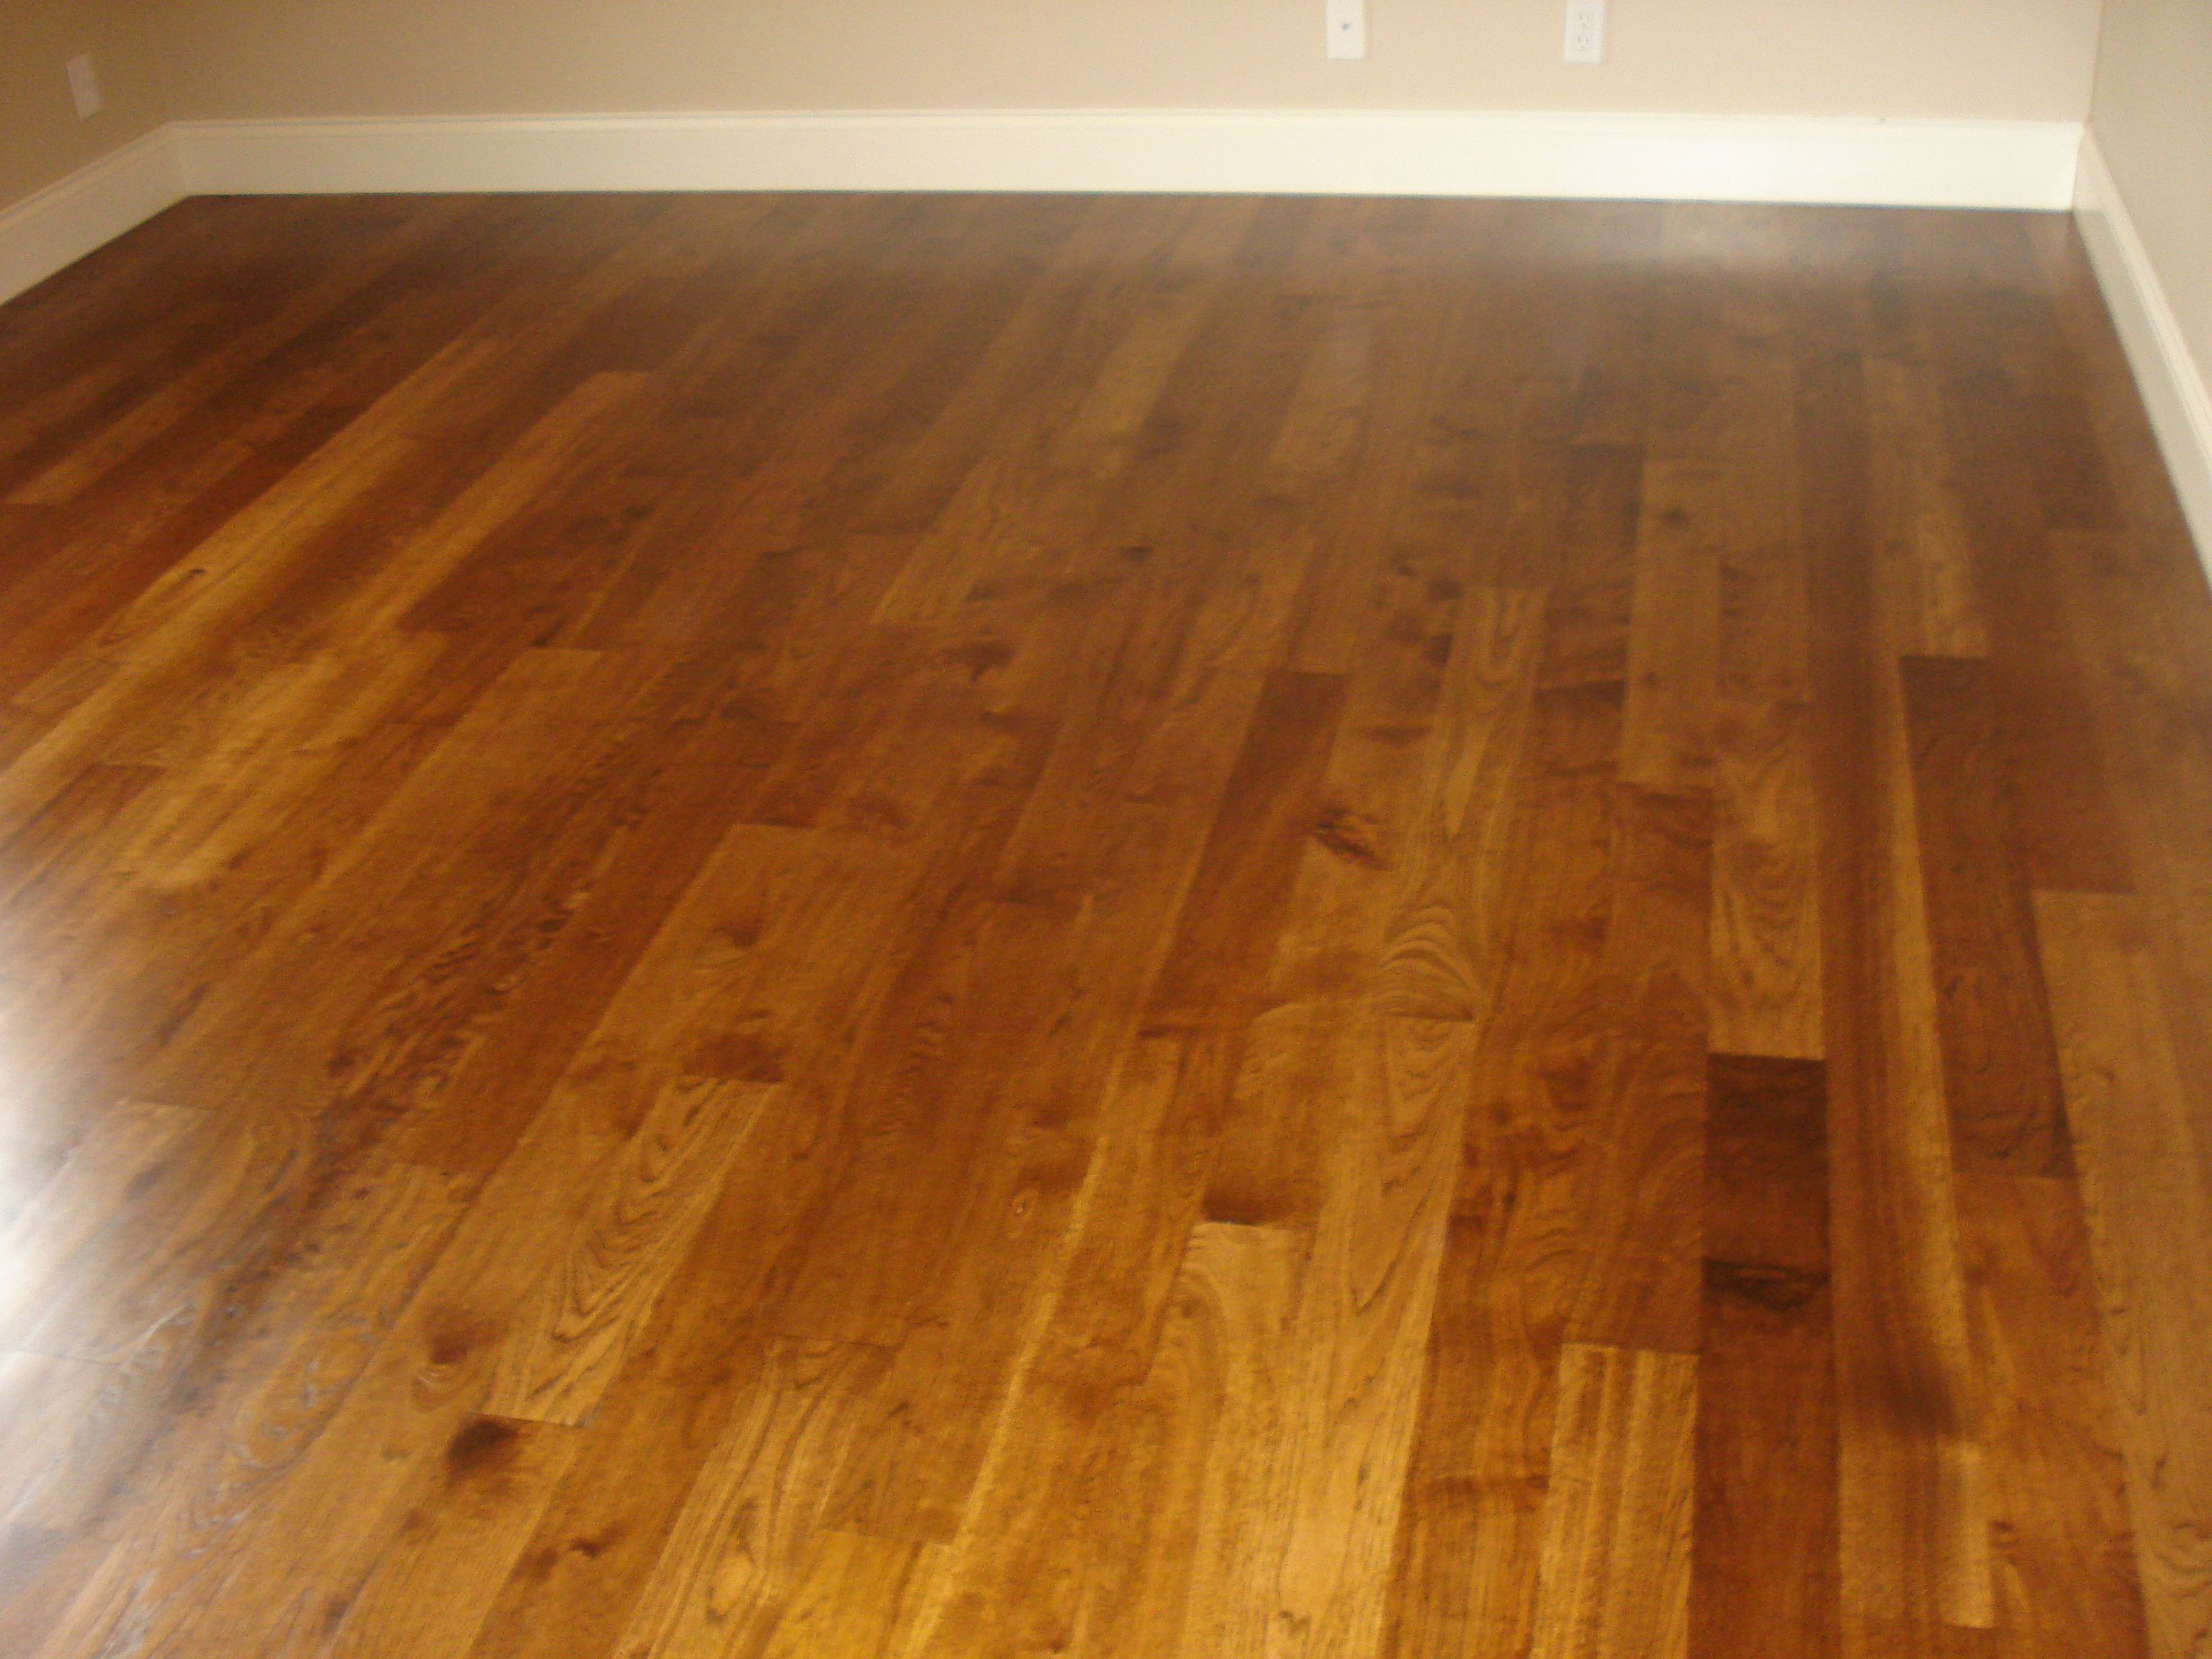 Wood Floor Room Exellent Empty Hardwood 3 Throughout O